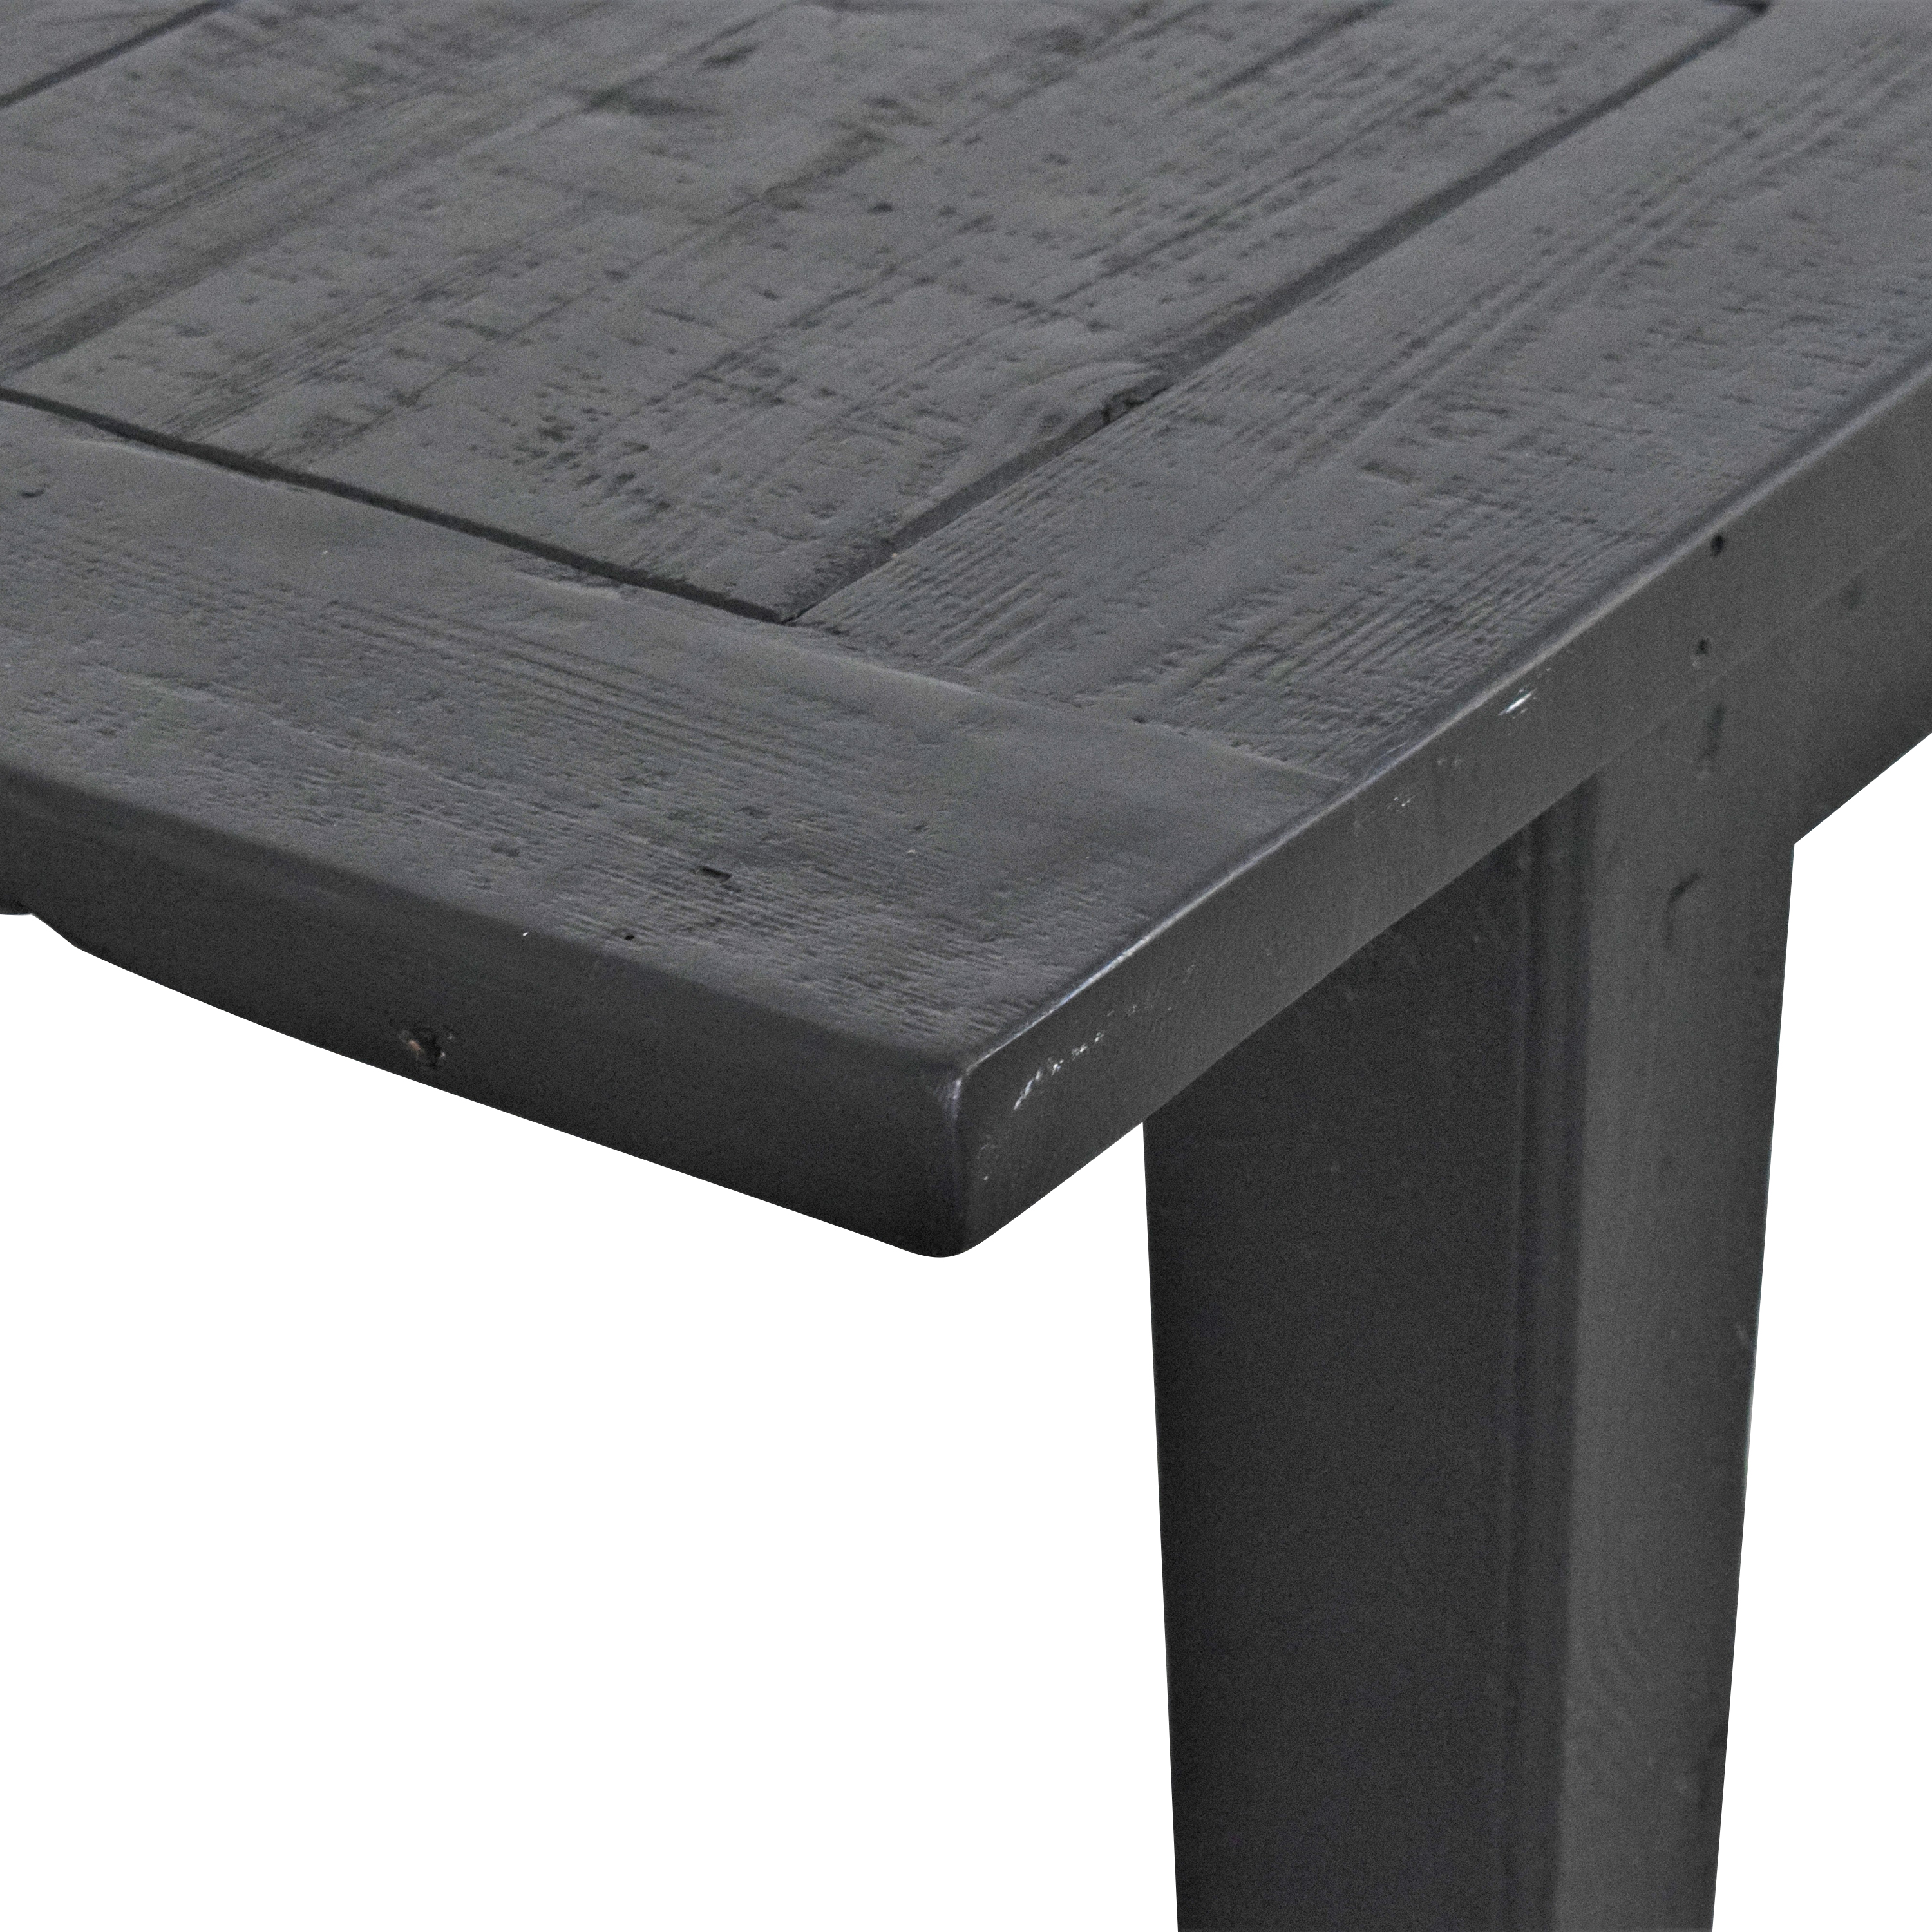 Restoration Hardware Restoration Hardware 1900s Boulangerie Rectangular Extension Dining Table ma